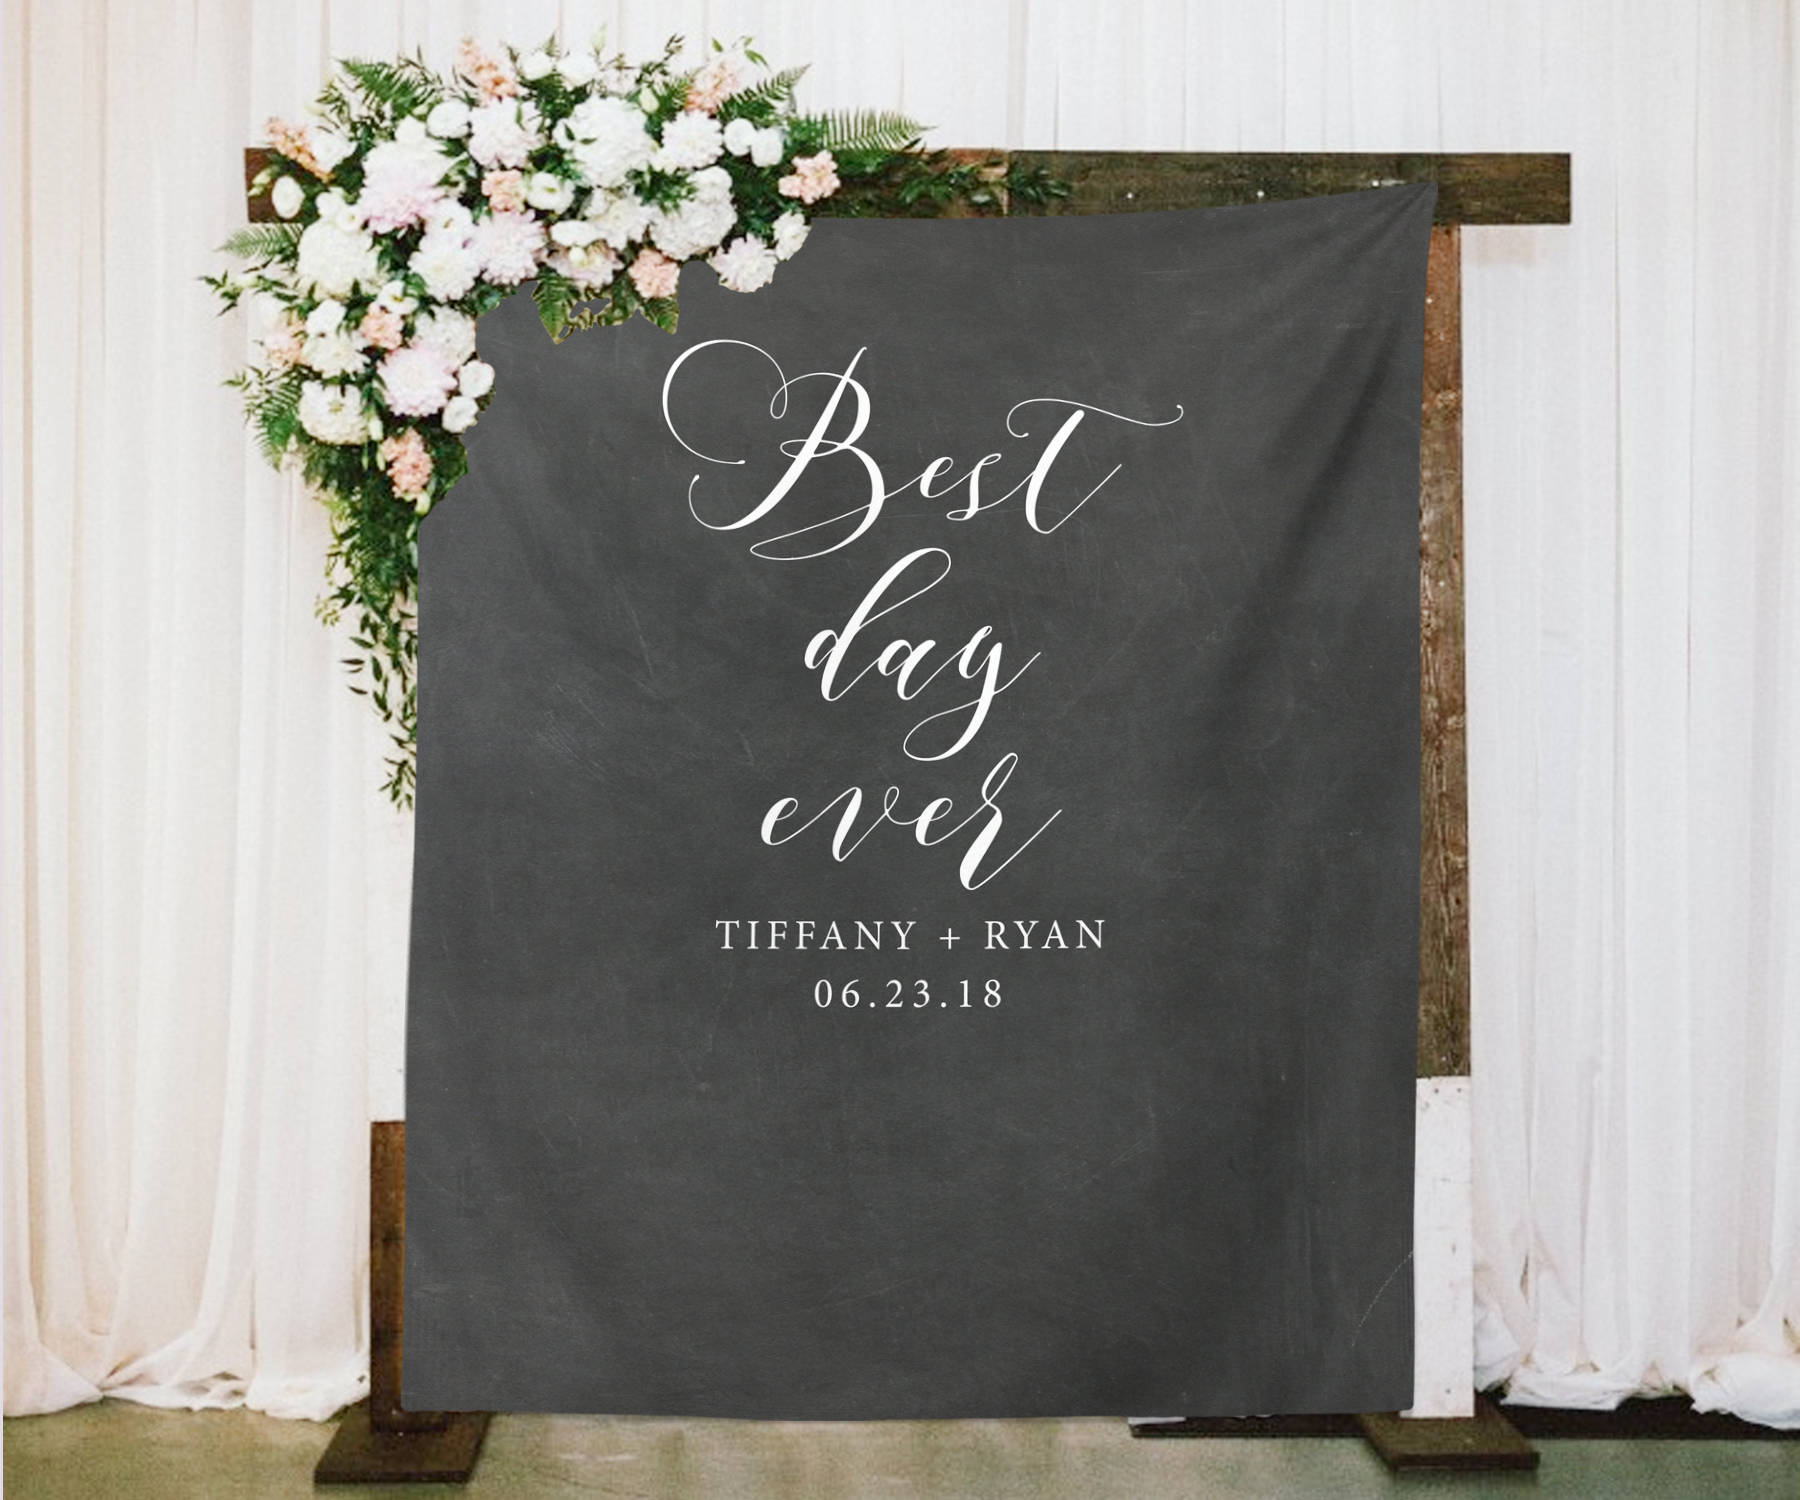 Best Time Of Day For Wedding: Best Day Ever Chalkboard Wedding Reception Backdrop